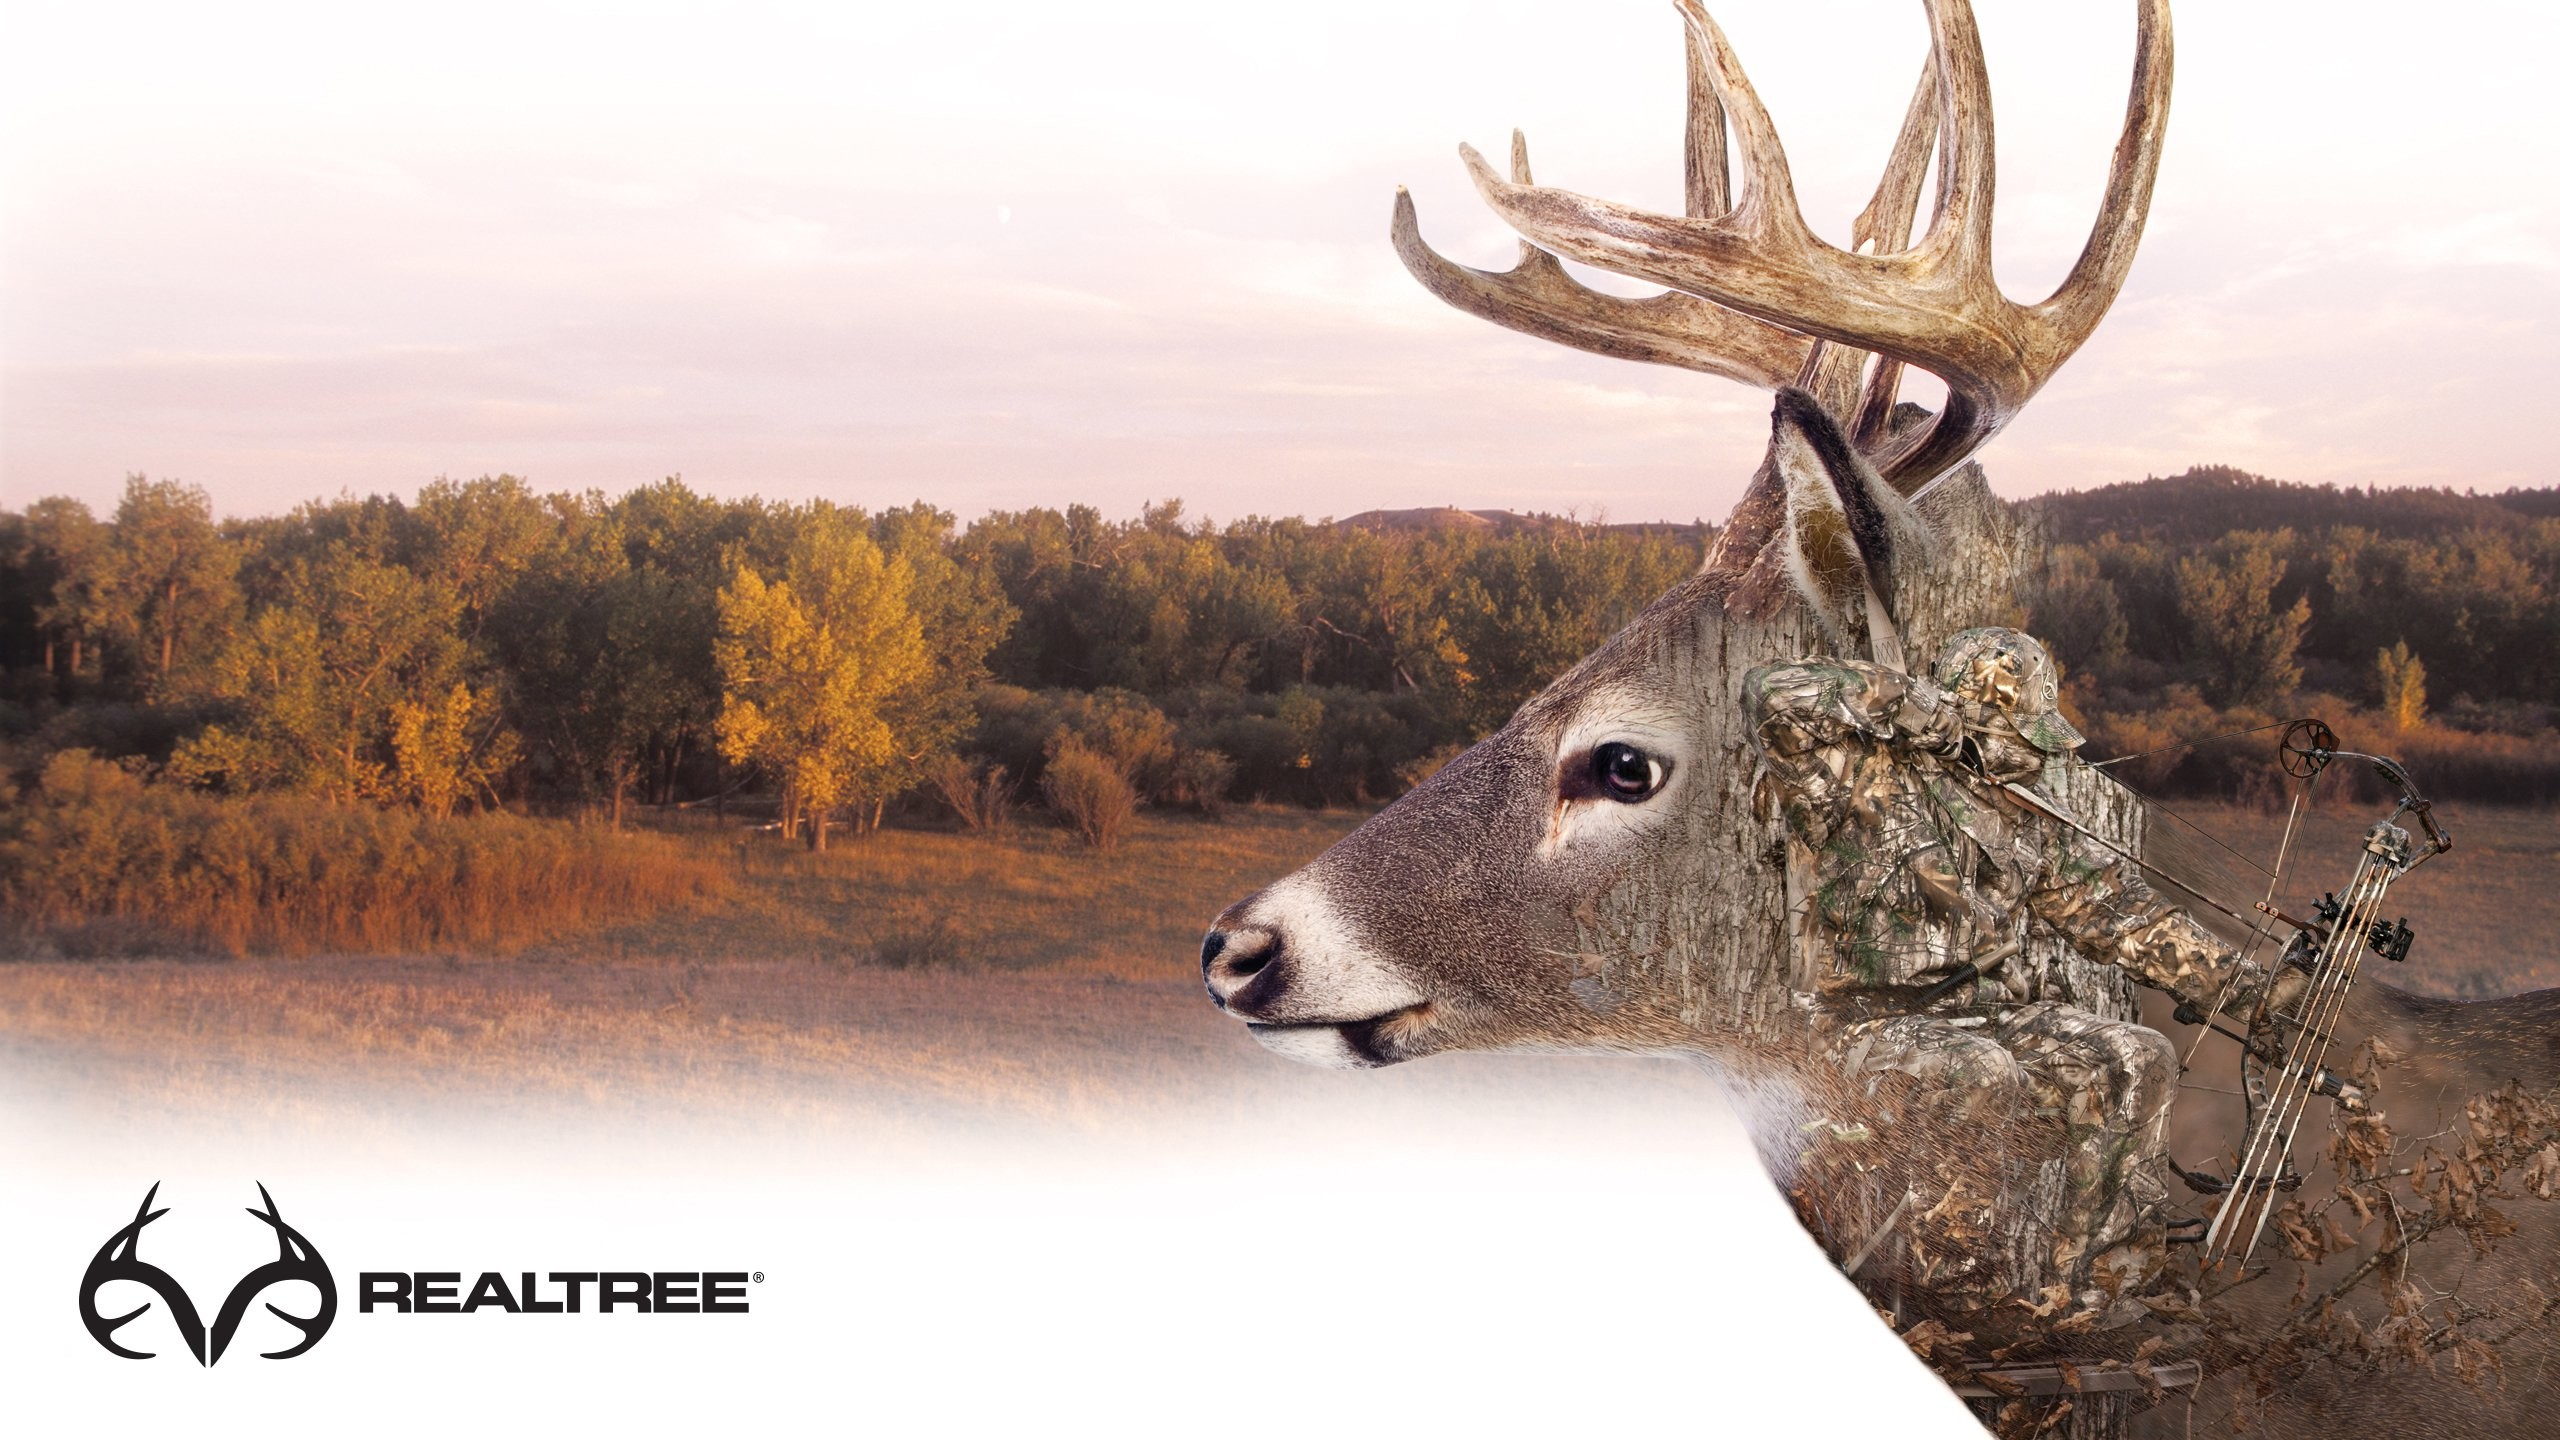 Whitetail deer wallpaper 58 images - Hunting wallpaper for android ...